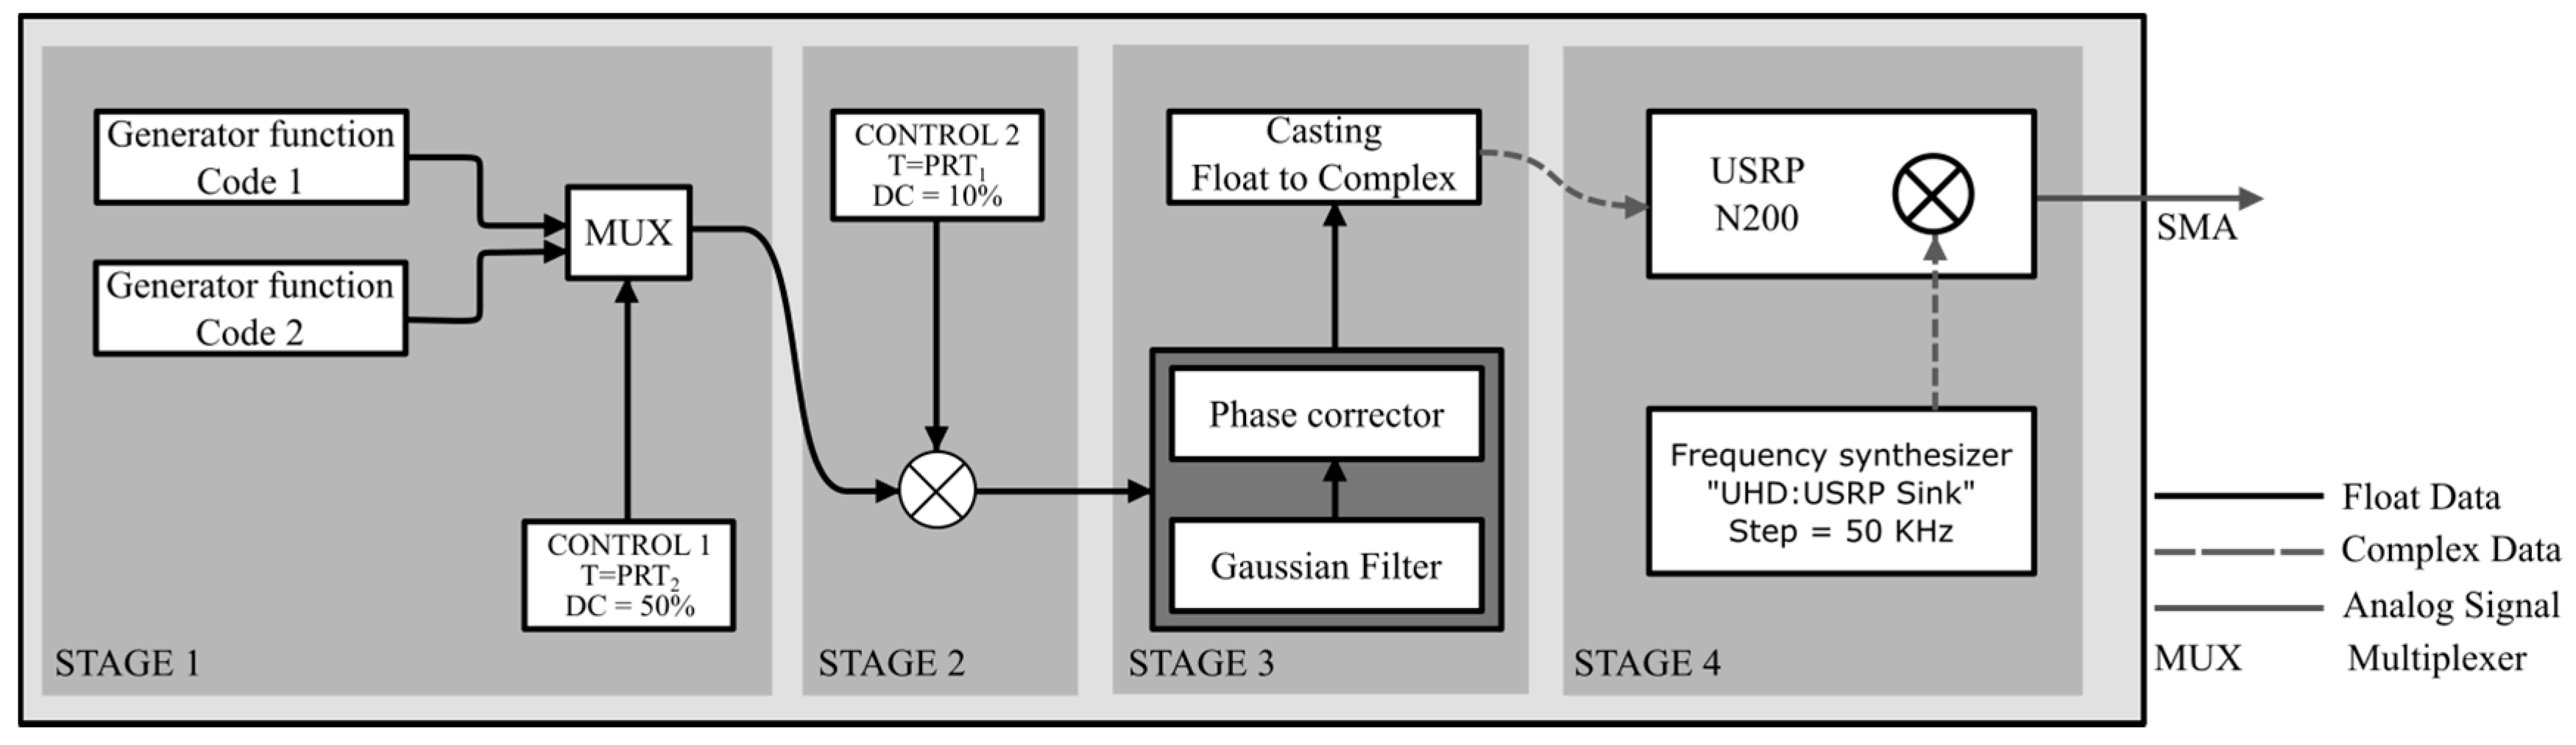 Sensors | Free Full-Text | Implementation of an Electronic